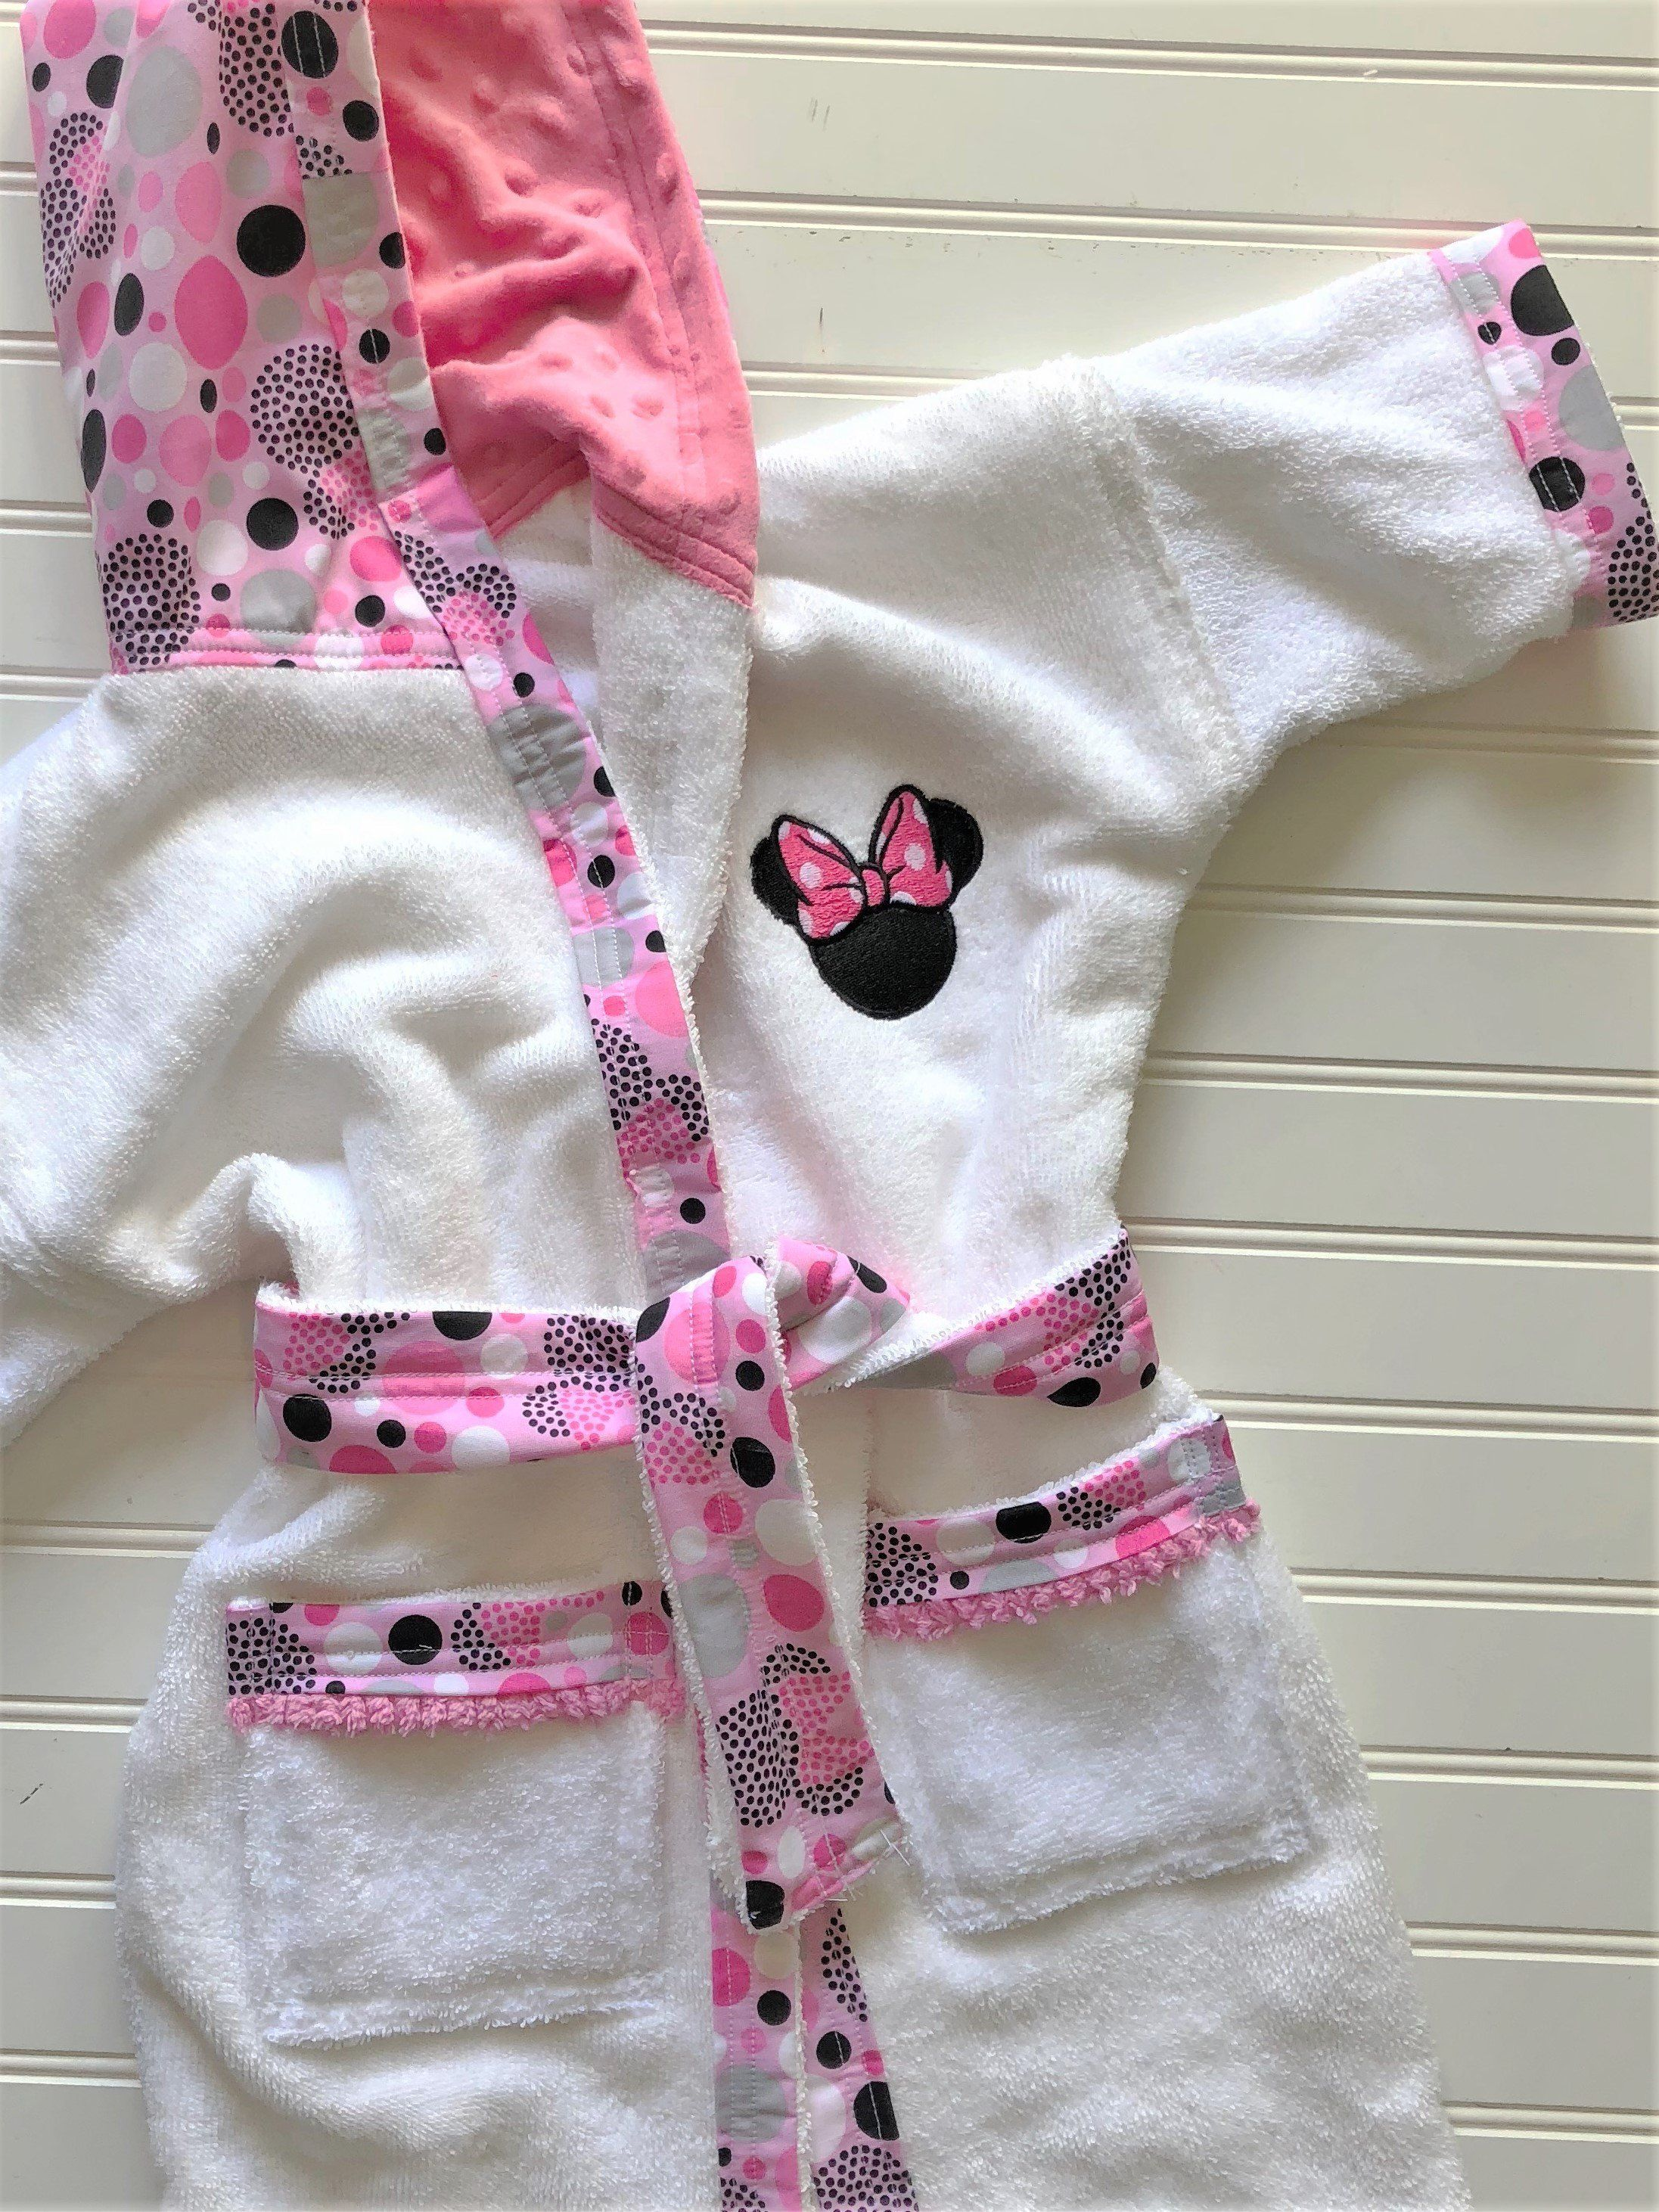 82cdb30b99 Personalized-Girls-Bath-Robe-Bathrobes-Hooded-Towels-Minnie-Mouse-Swimwear- Terry-Beach-Cover-Up-Baby-Toddler-Birthday-Holiday-Kids-Teen-Gift by  tanjadlyn on ...